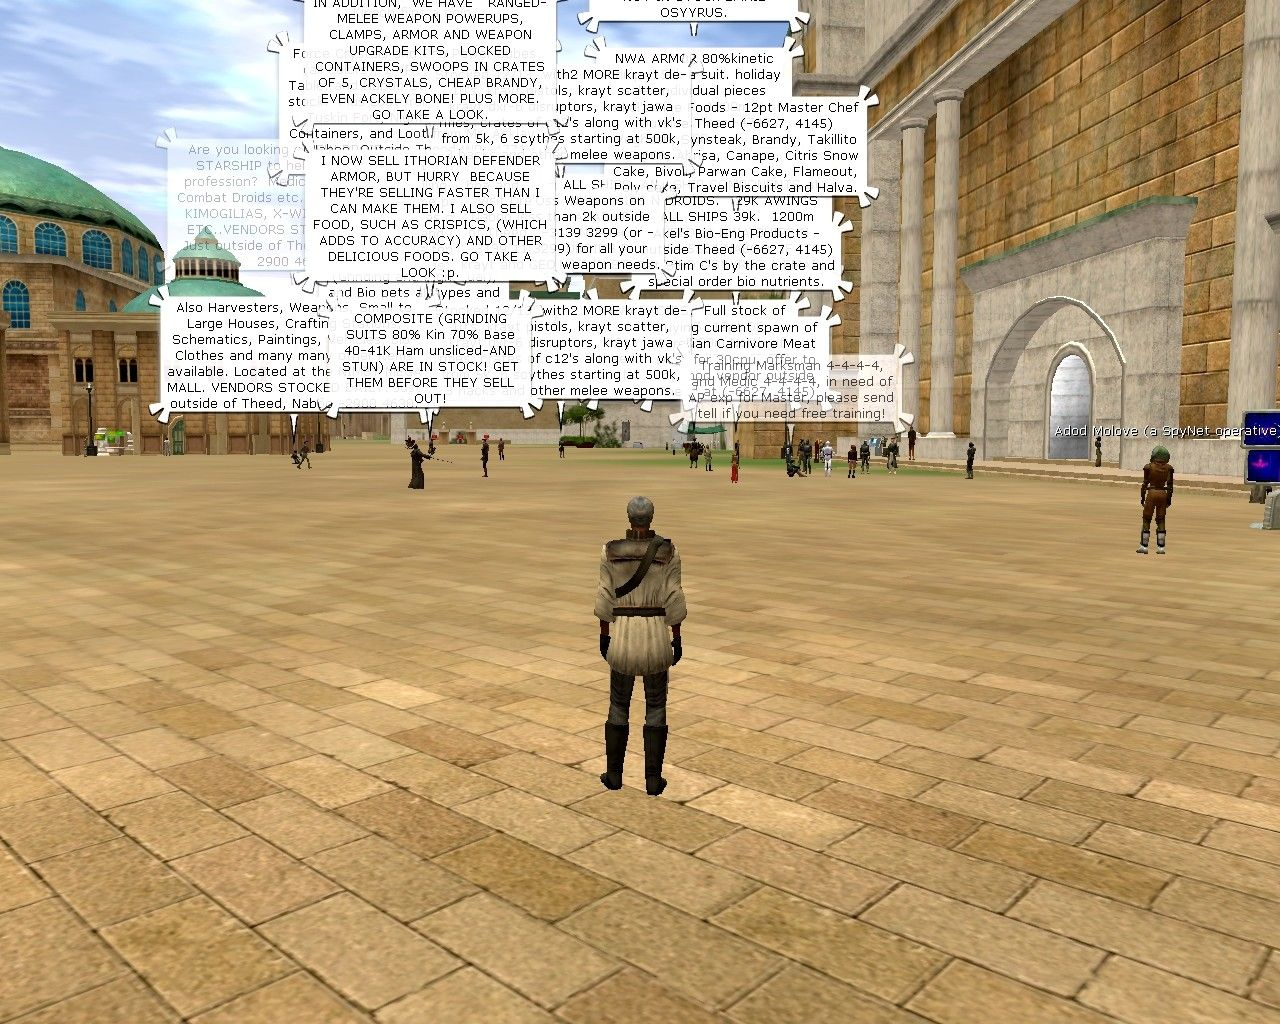 Star Wars: Galaxies - An Empire Divided Windows That famous Bria chat spam!  Outside the spaceport on Theed, Naboo.